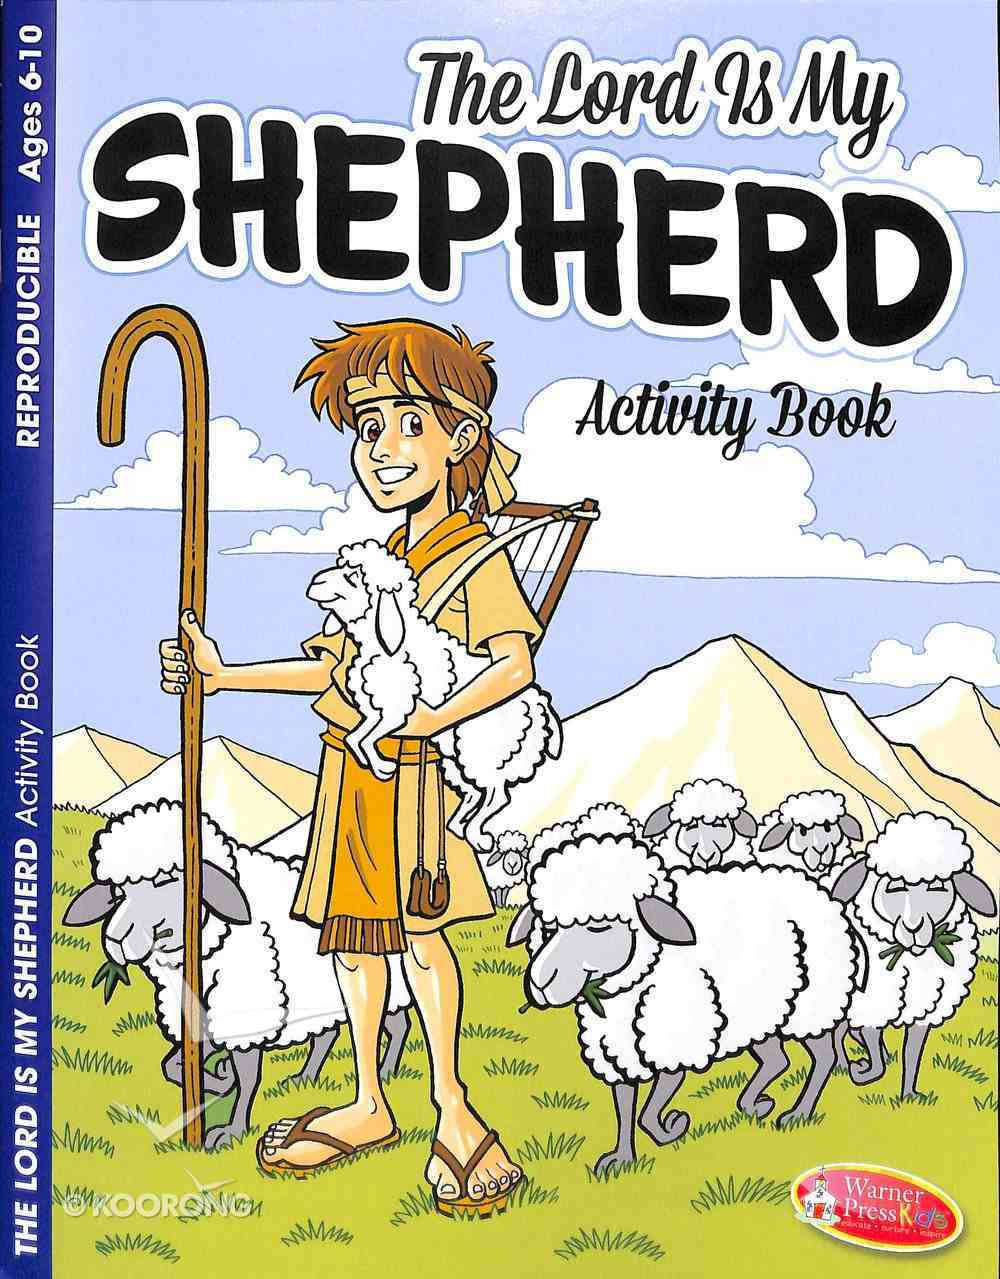 The Lord is My Shepherd (Ages 6-10, Reproducible) (Warner Press Colouring & Activity Books Series) Paperback